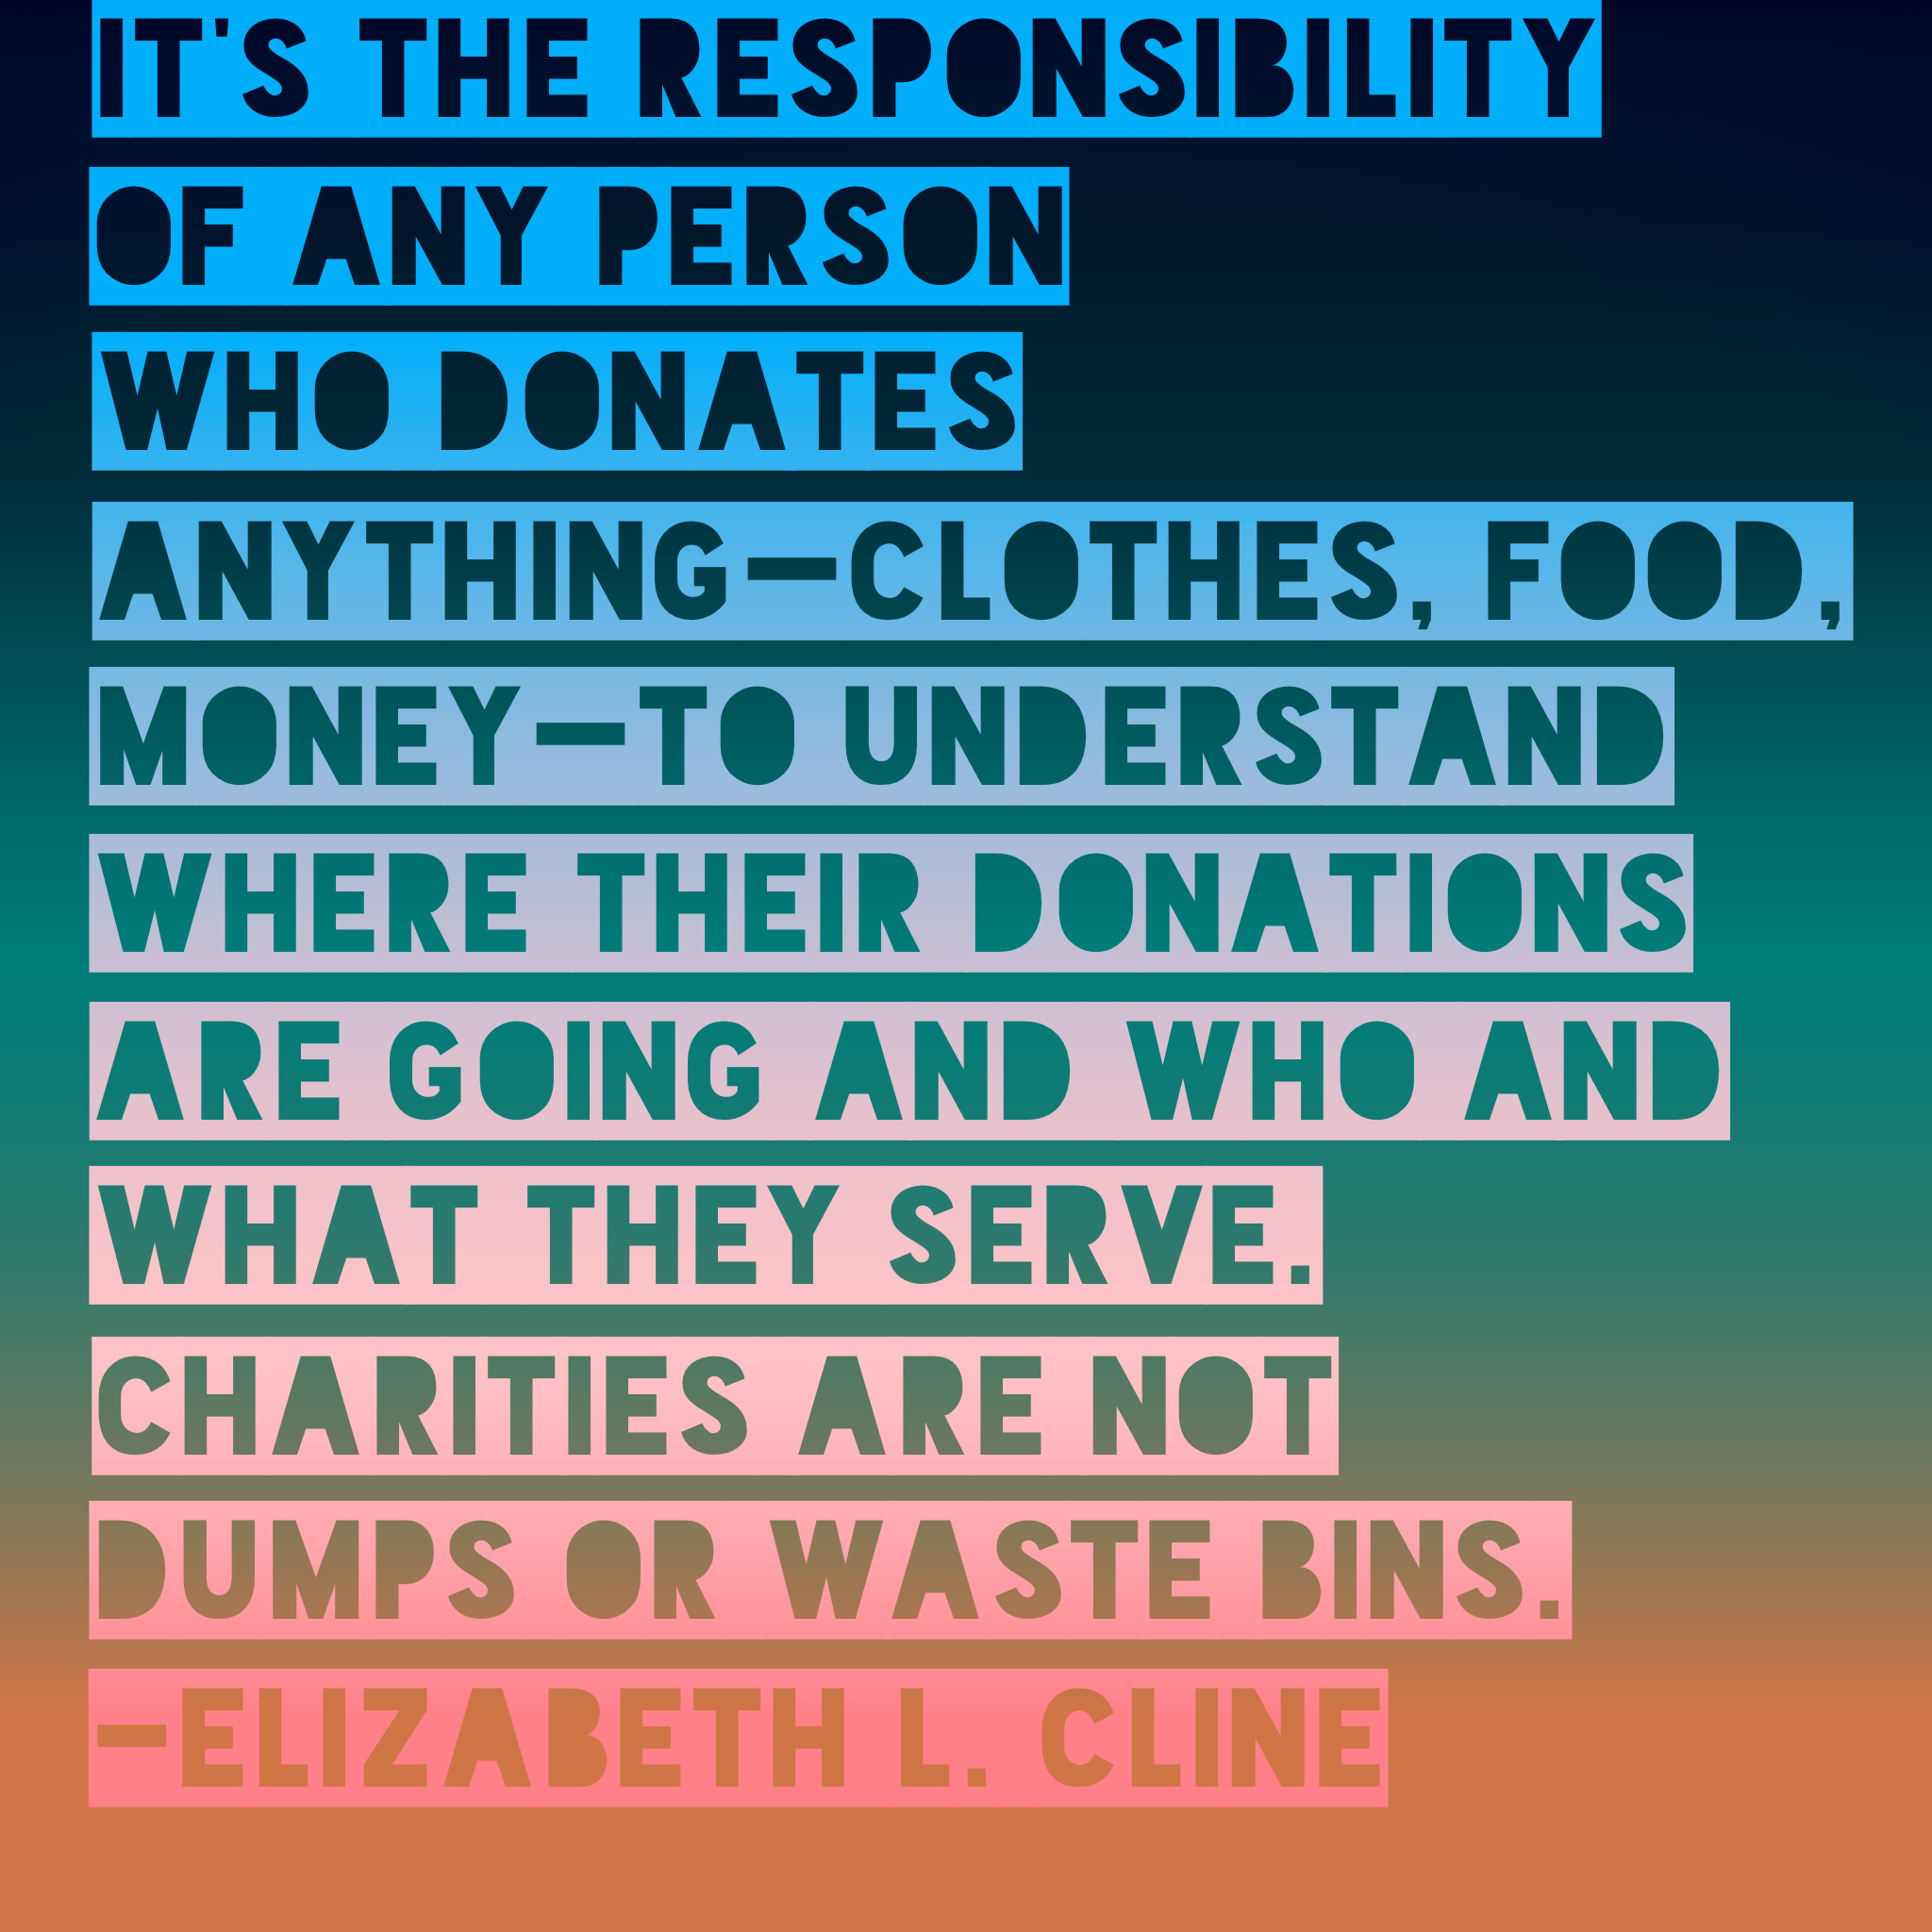 Quote About The Clothing Donation System Elizabethlcline Secondhandclothing Second Hand Clothes Elizabeth Understanding